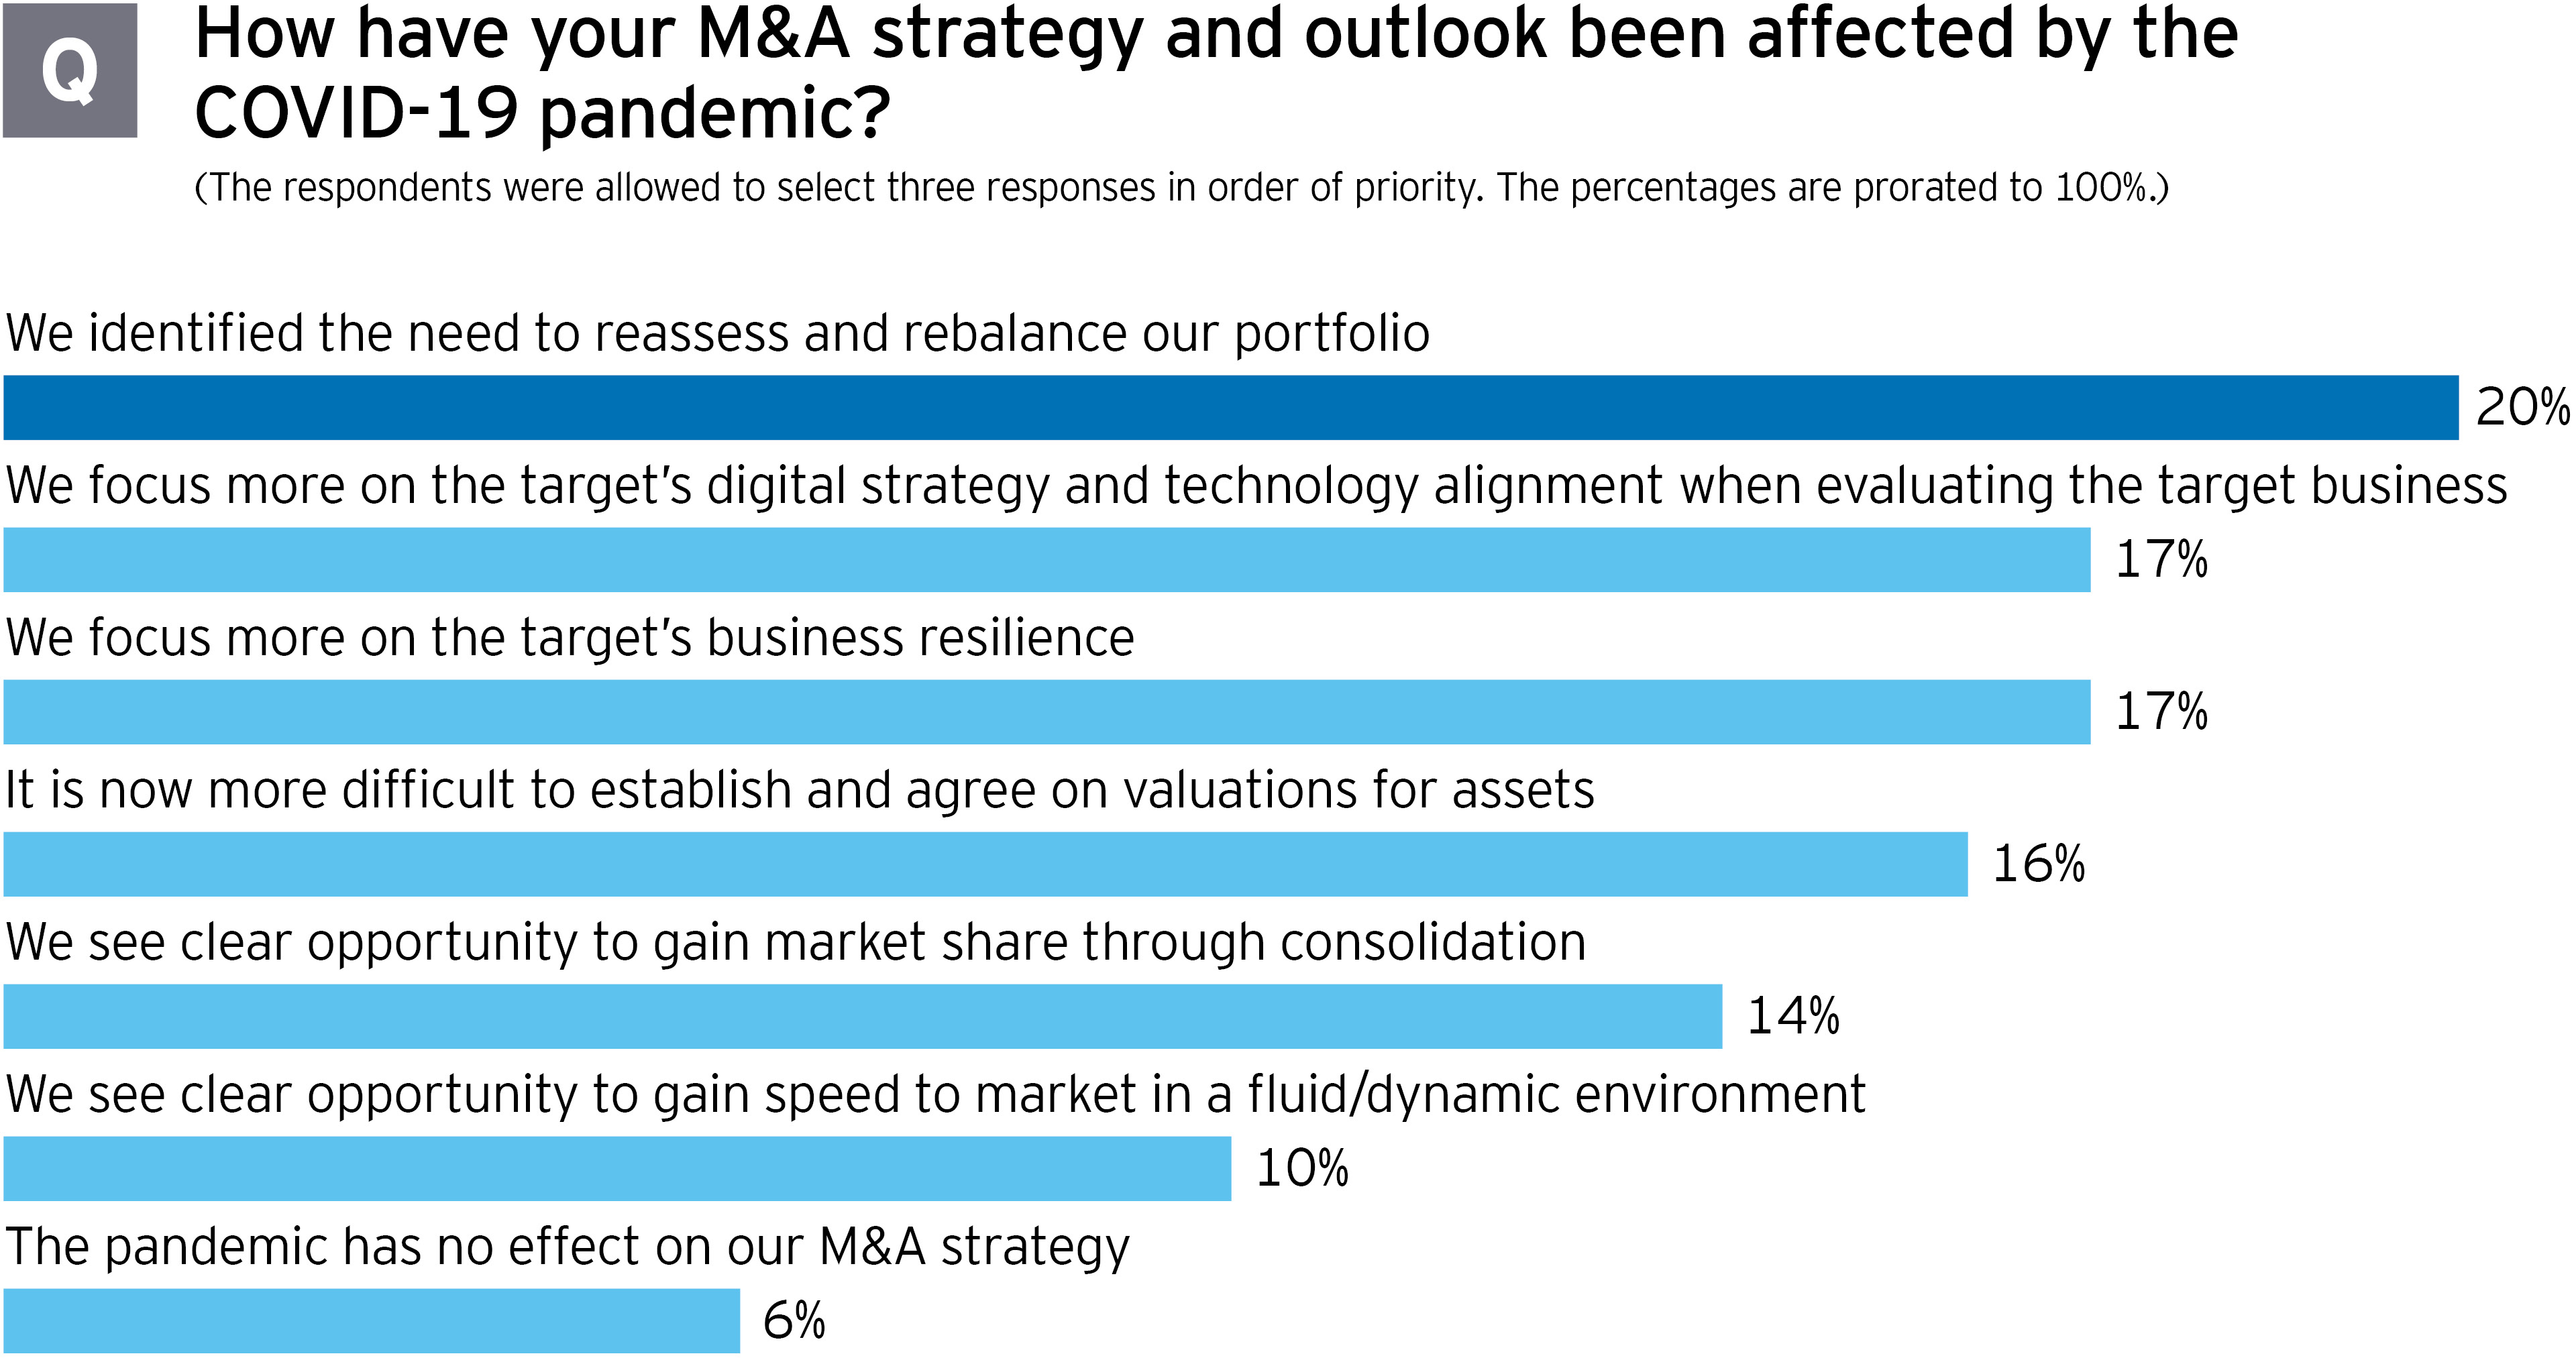 M&A survey: How the pandemic affected your M&A strategy and outlook